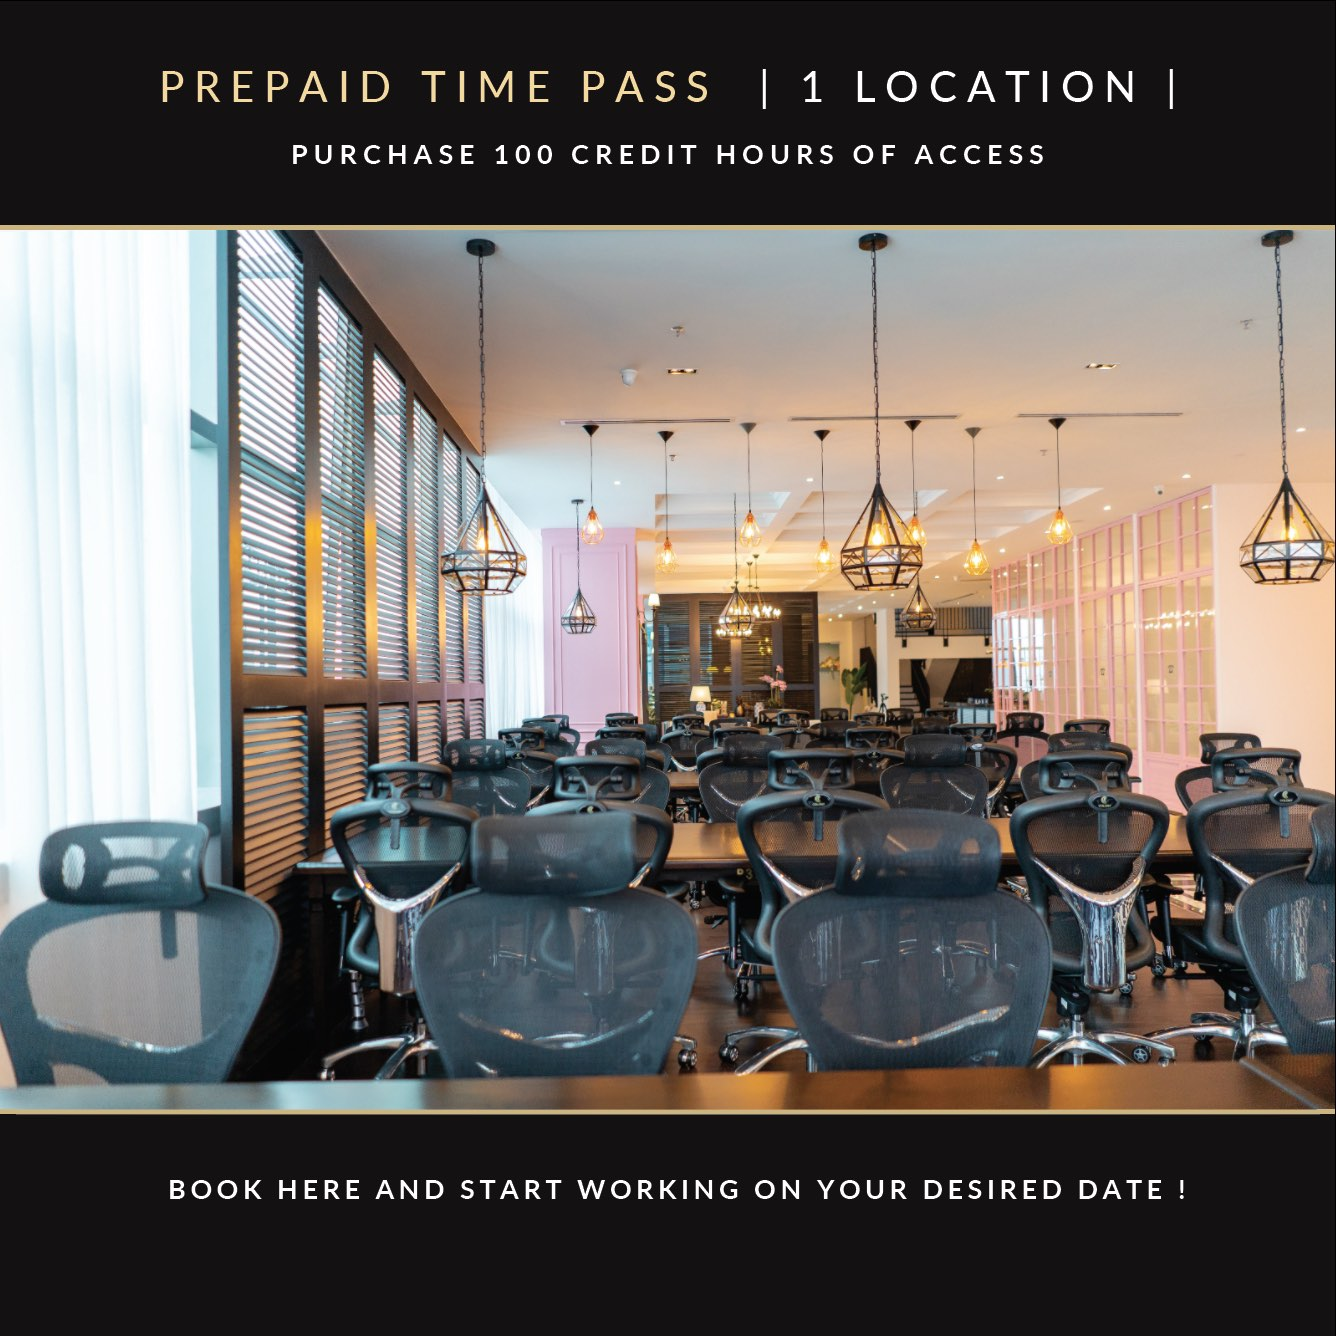 Product-Prepaid-Time-Pass-1-Location